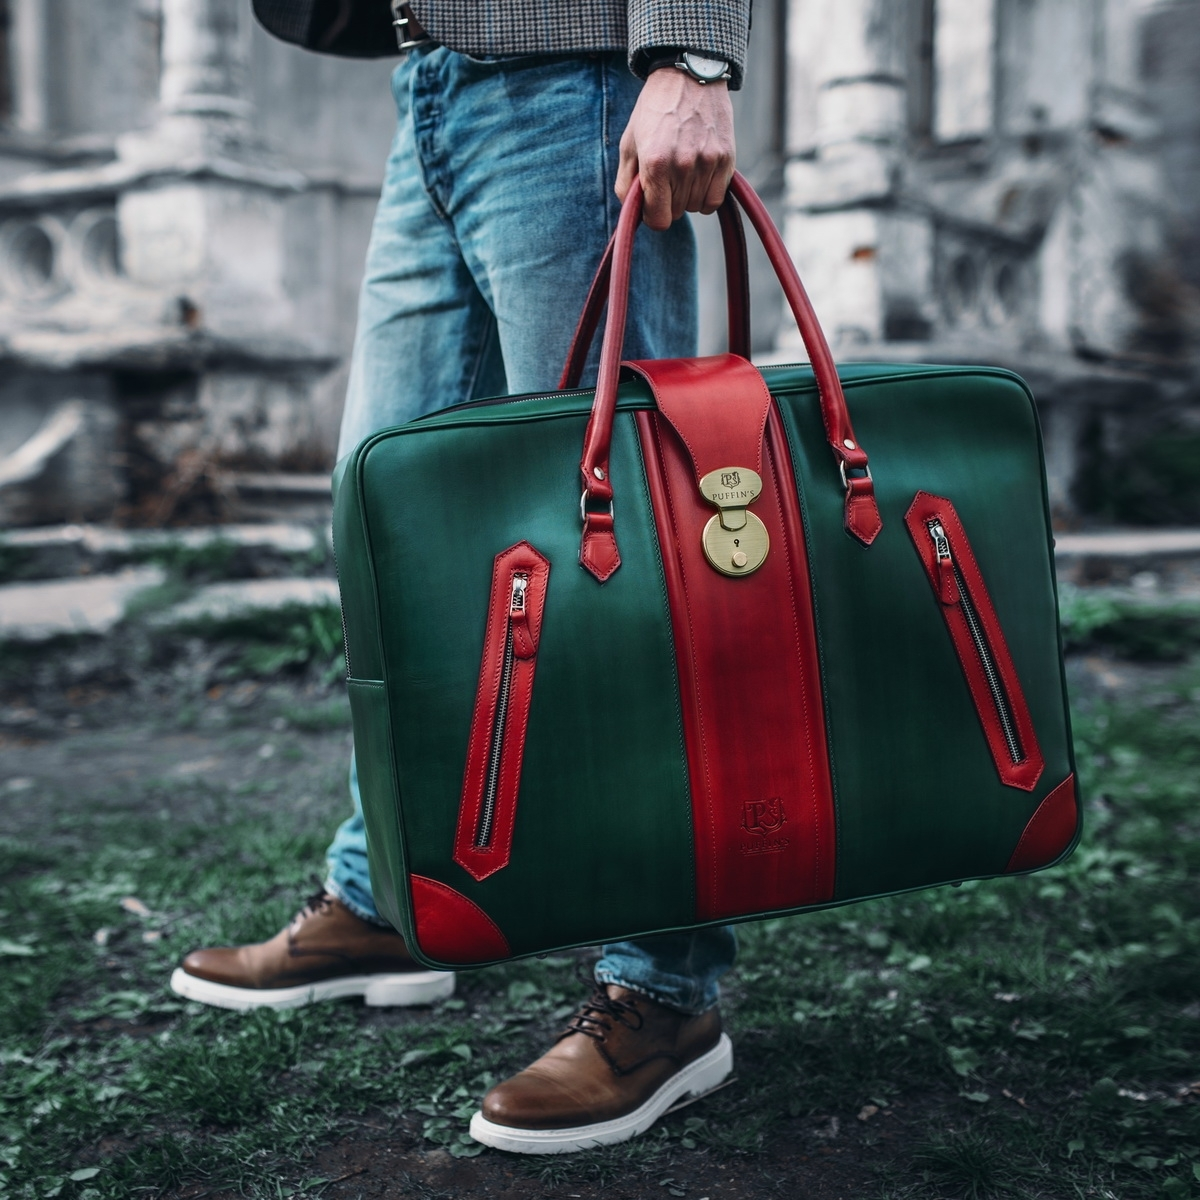 Leather suitcase HOLIDAY red currant & grassy green